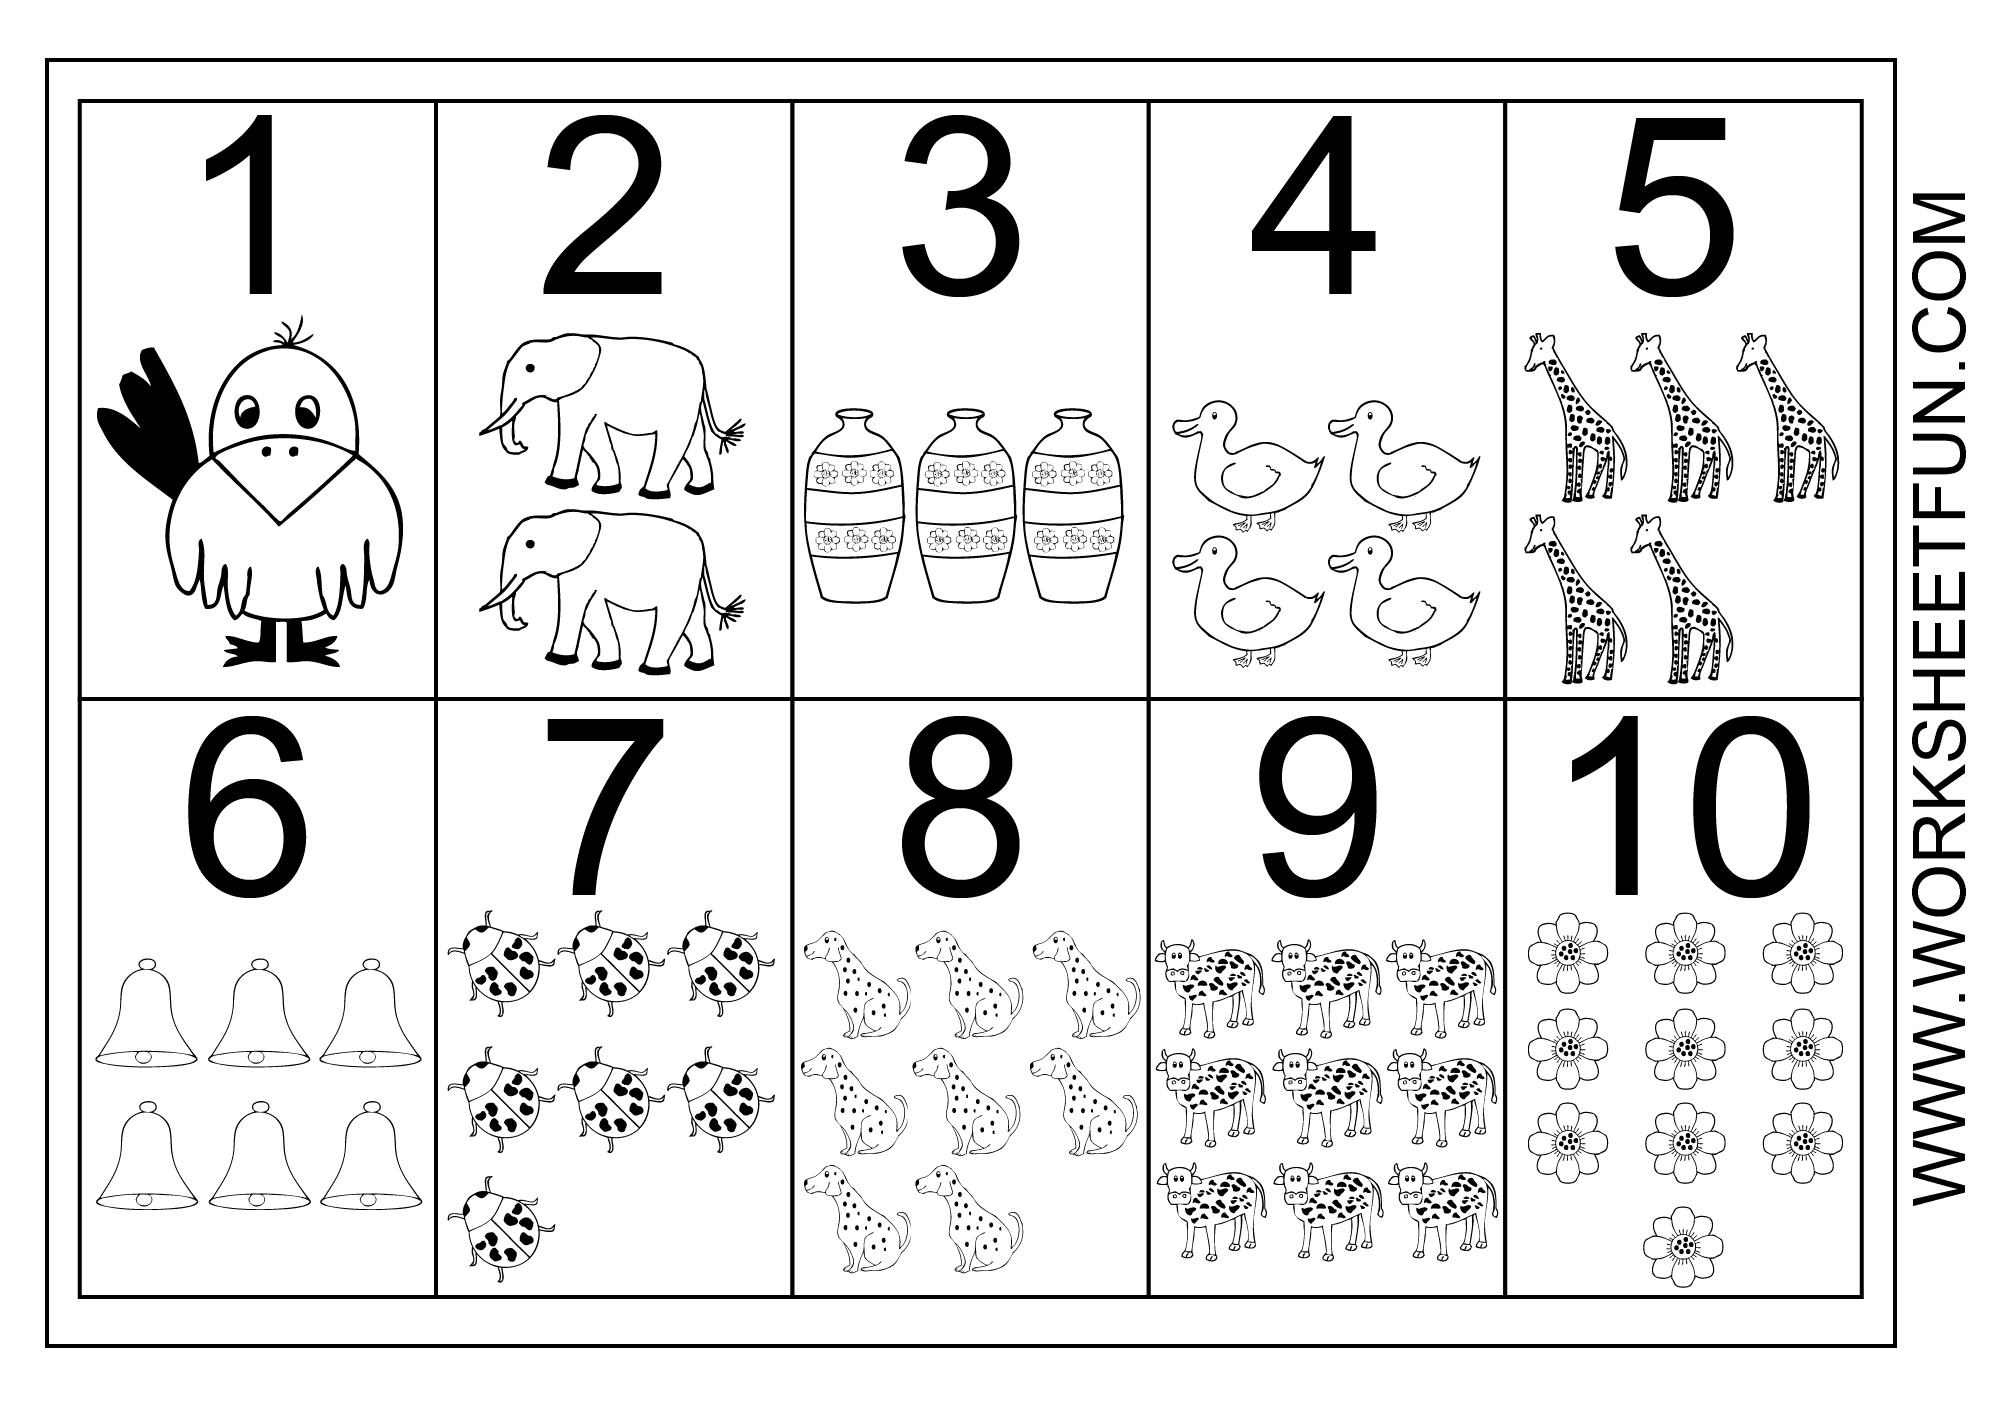 Worksheet 612792 Number Worksheets for Kindergarten – Number Worksheets for Kindergarten